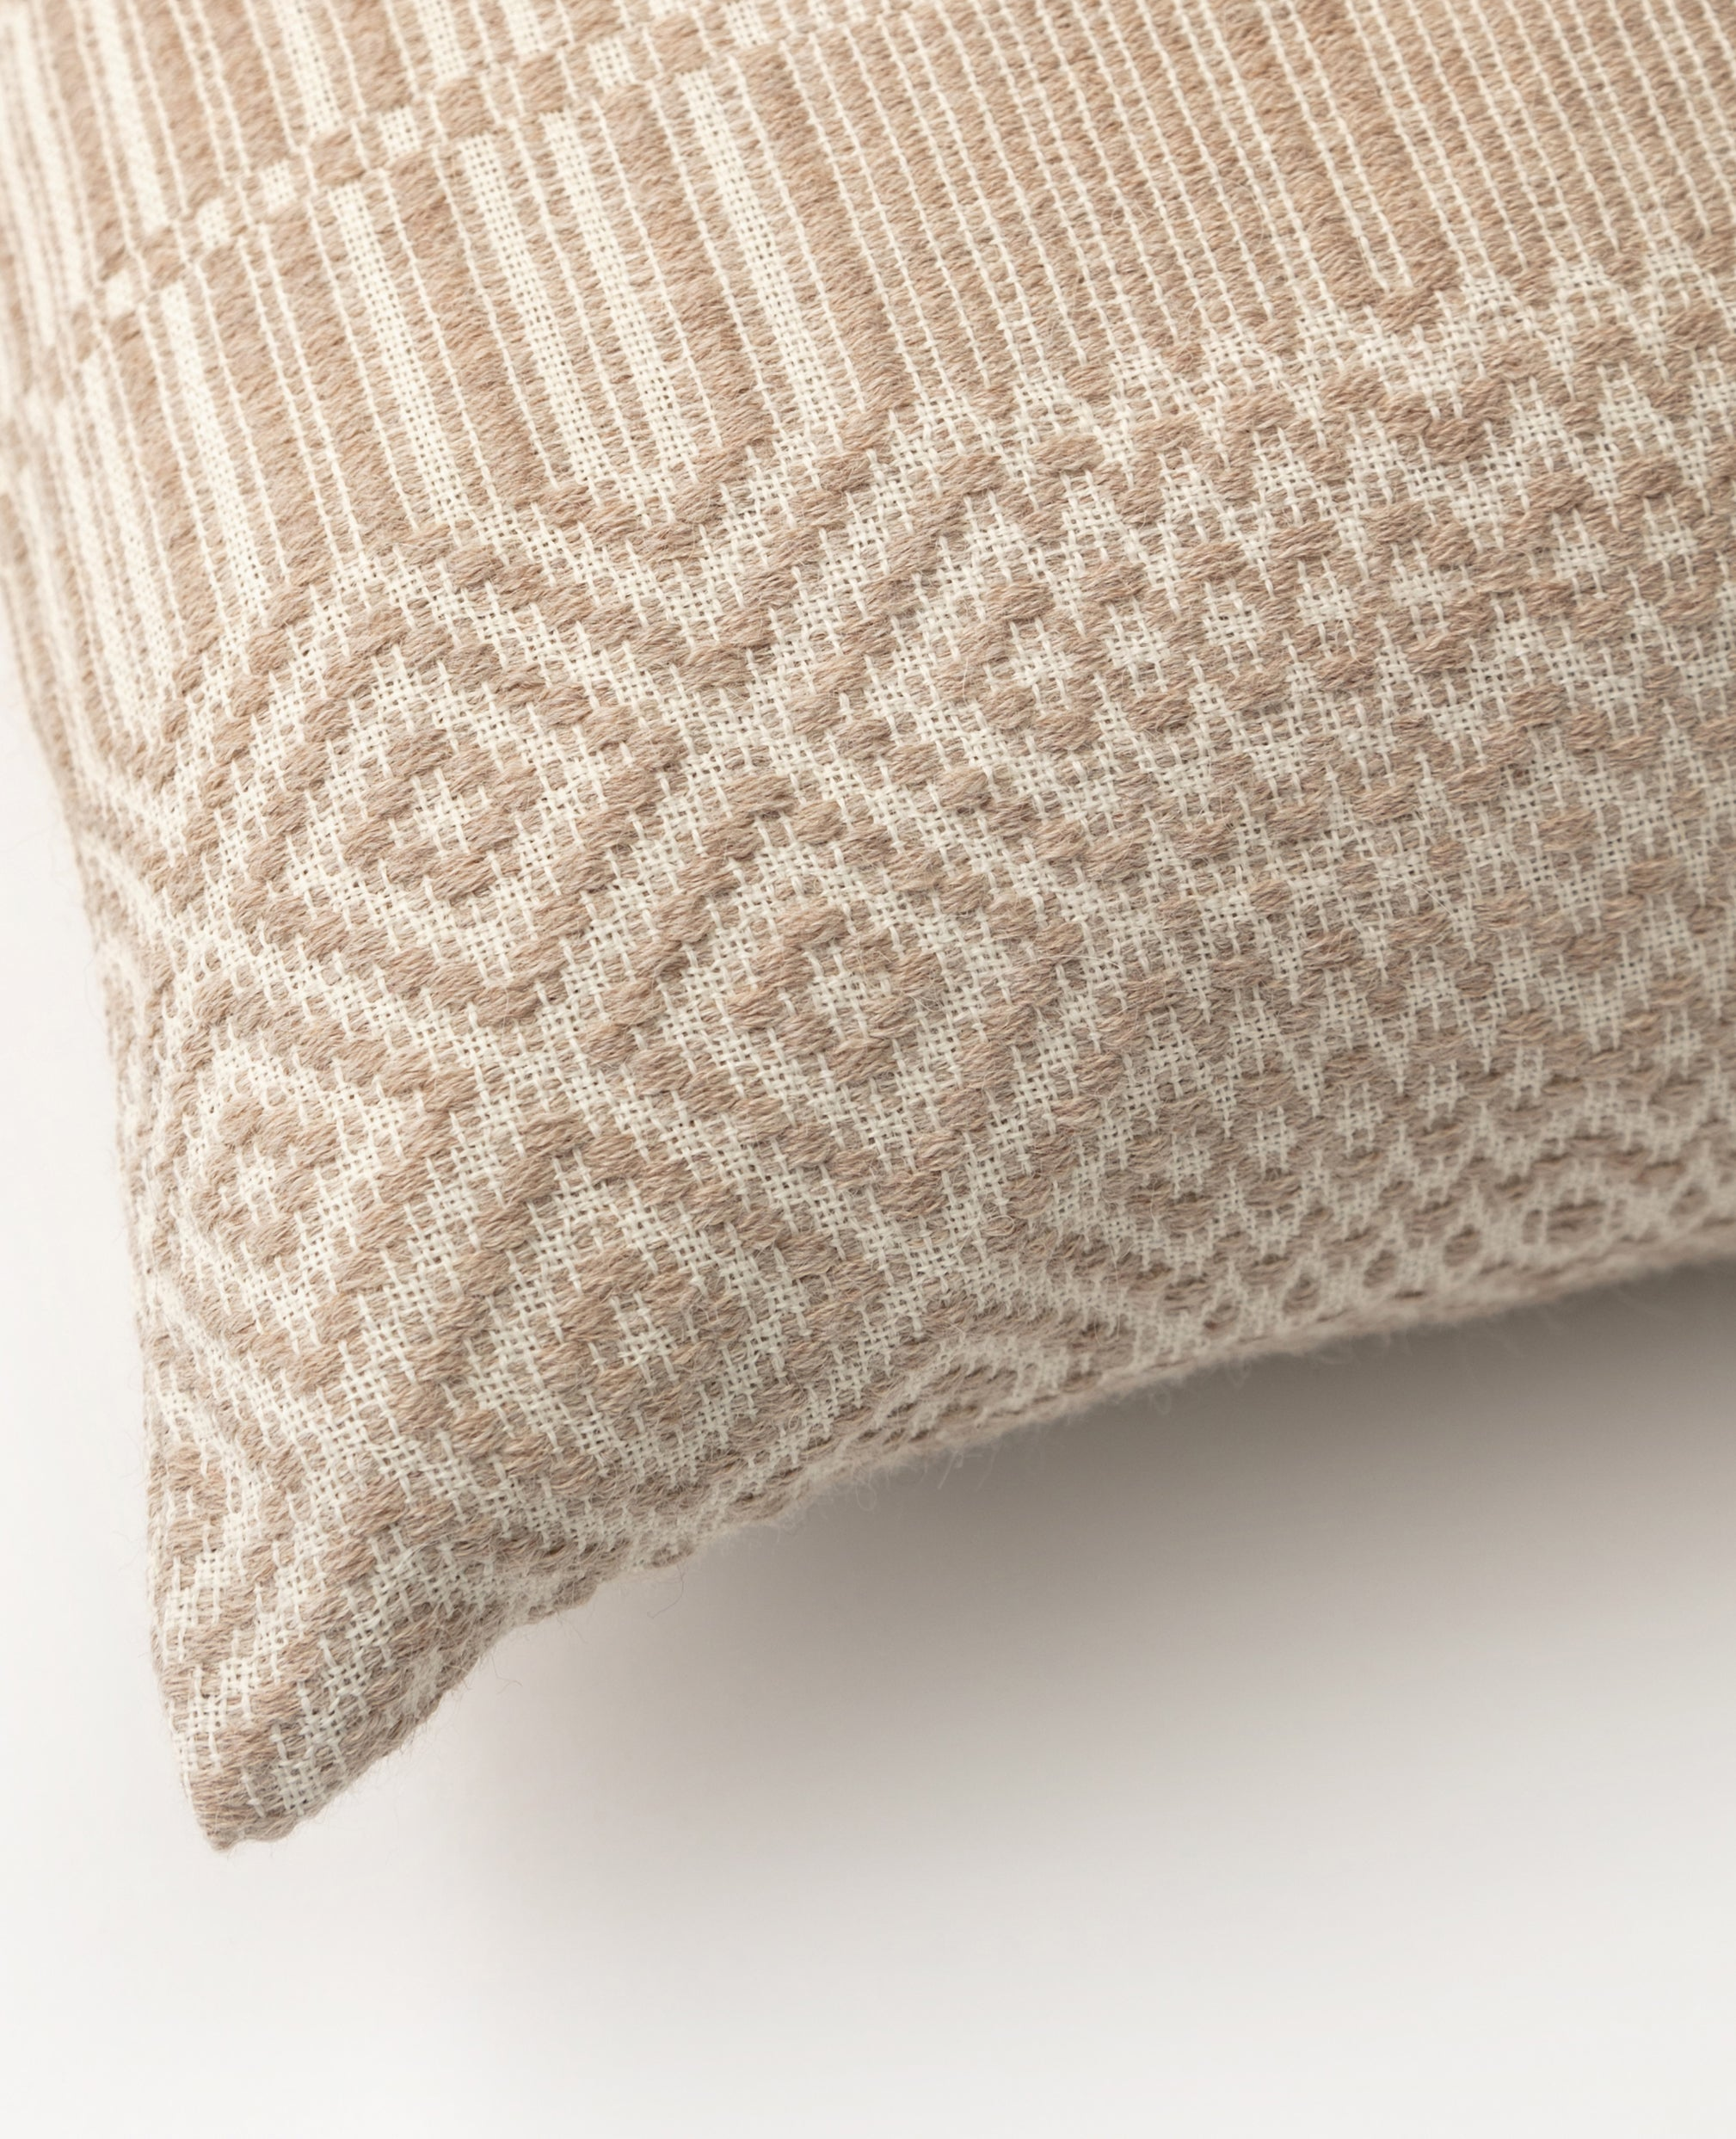 Havn overshot cushion detail